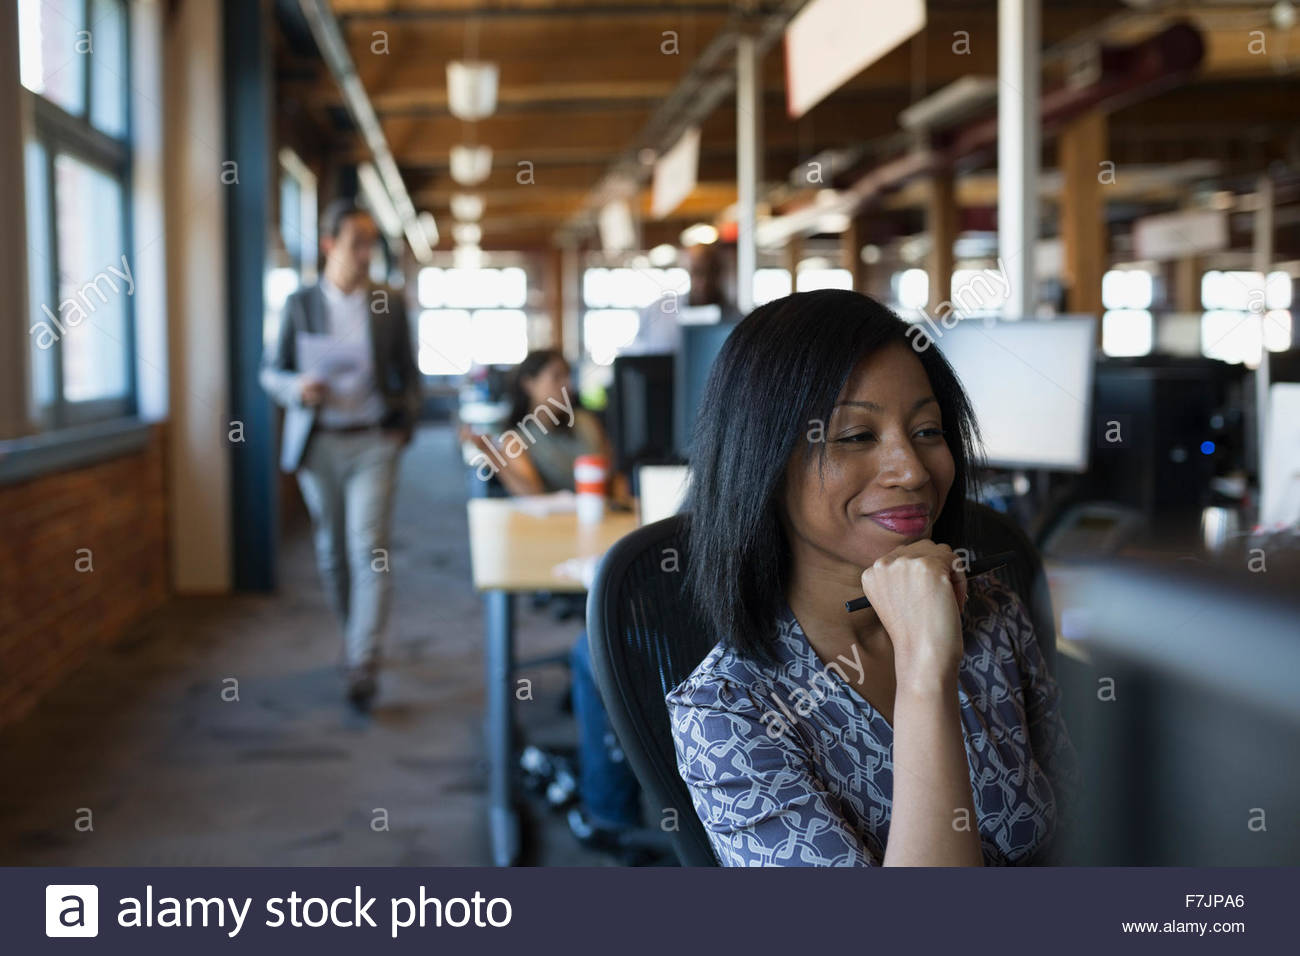 Smiling businesswoman working in office - Stock Image